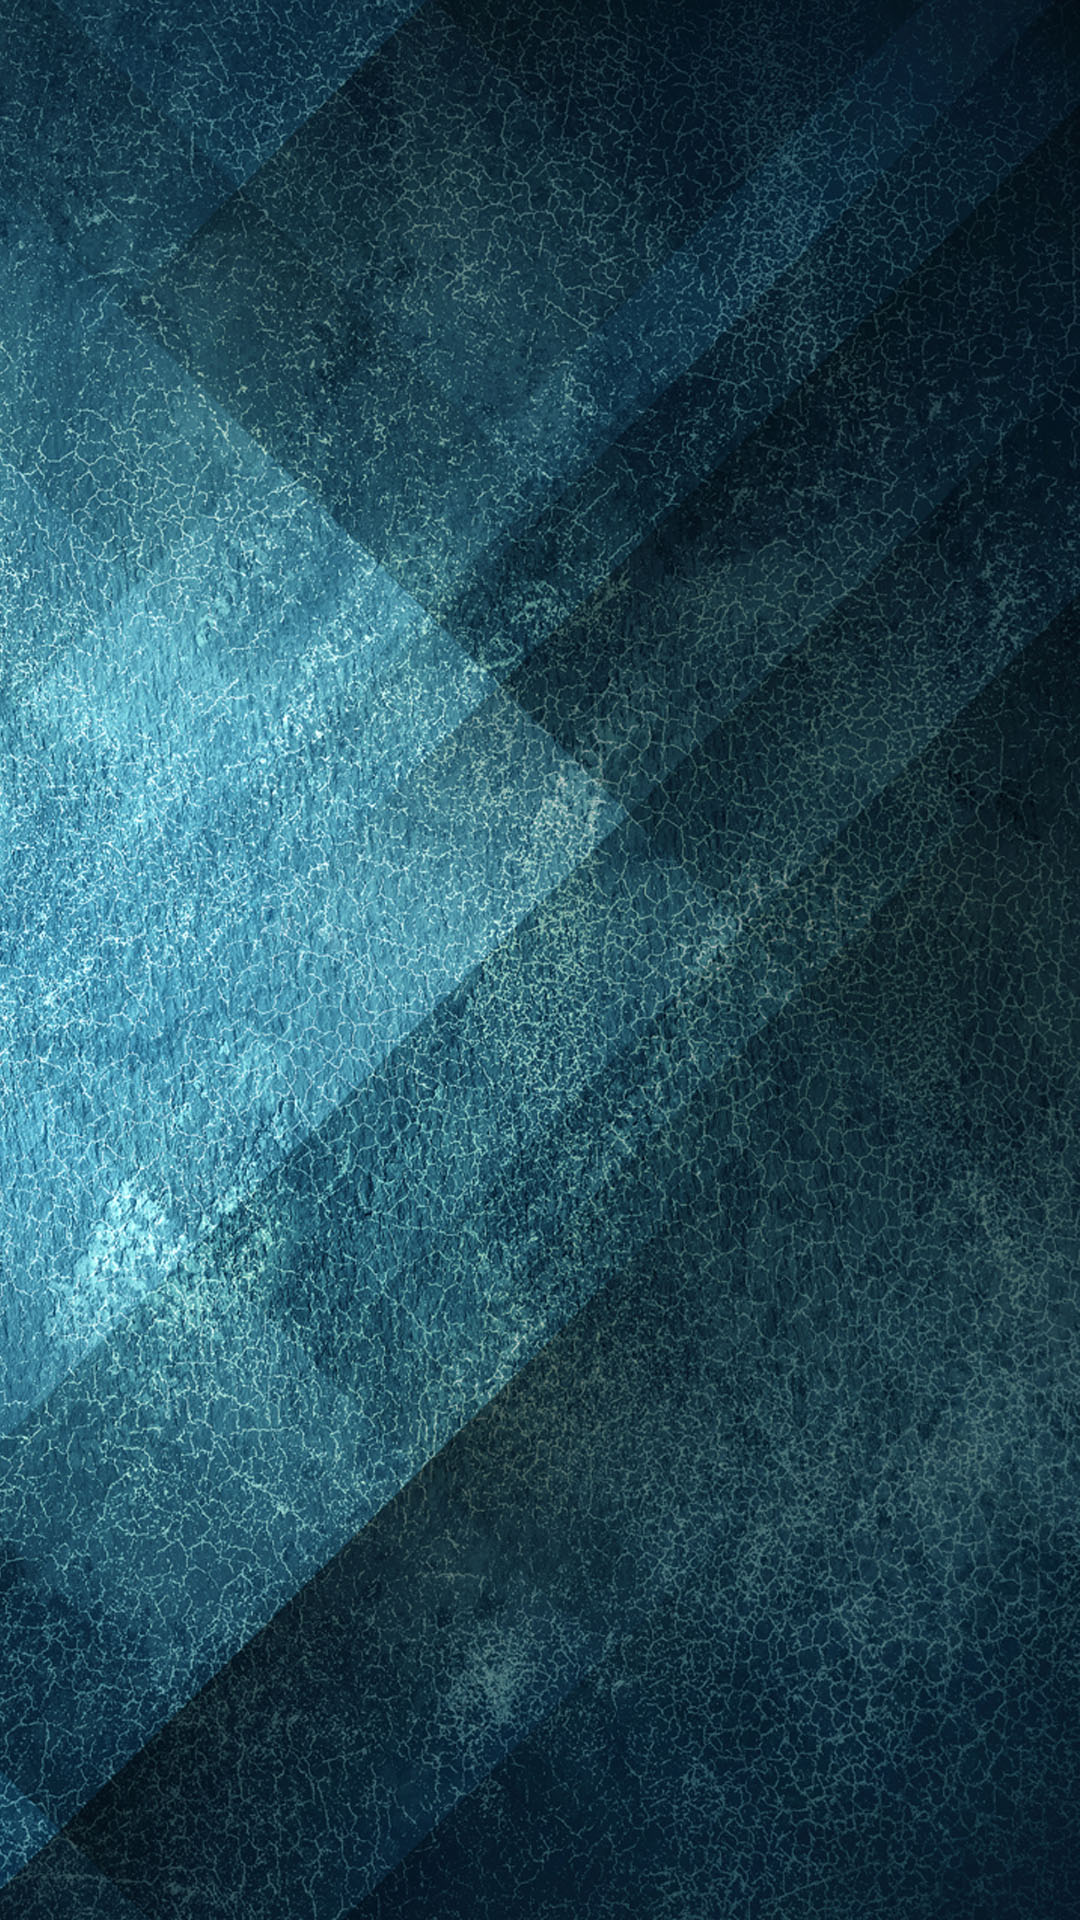 Blue grunge paper htc one wallpaper